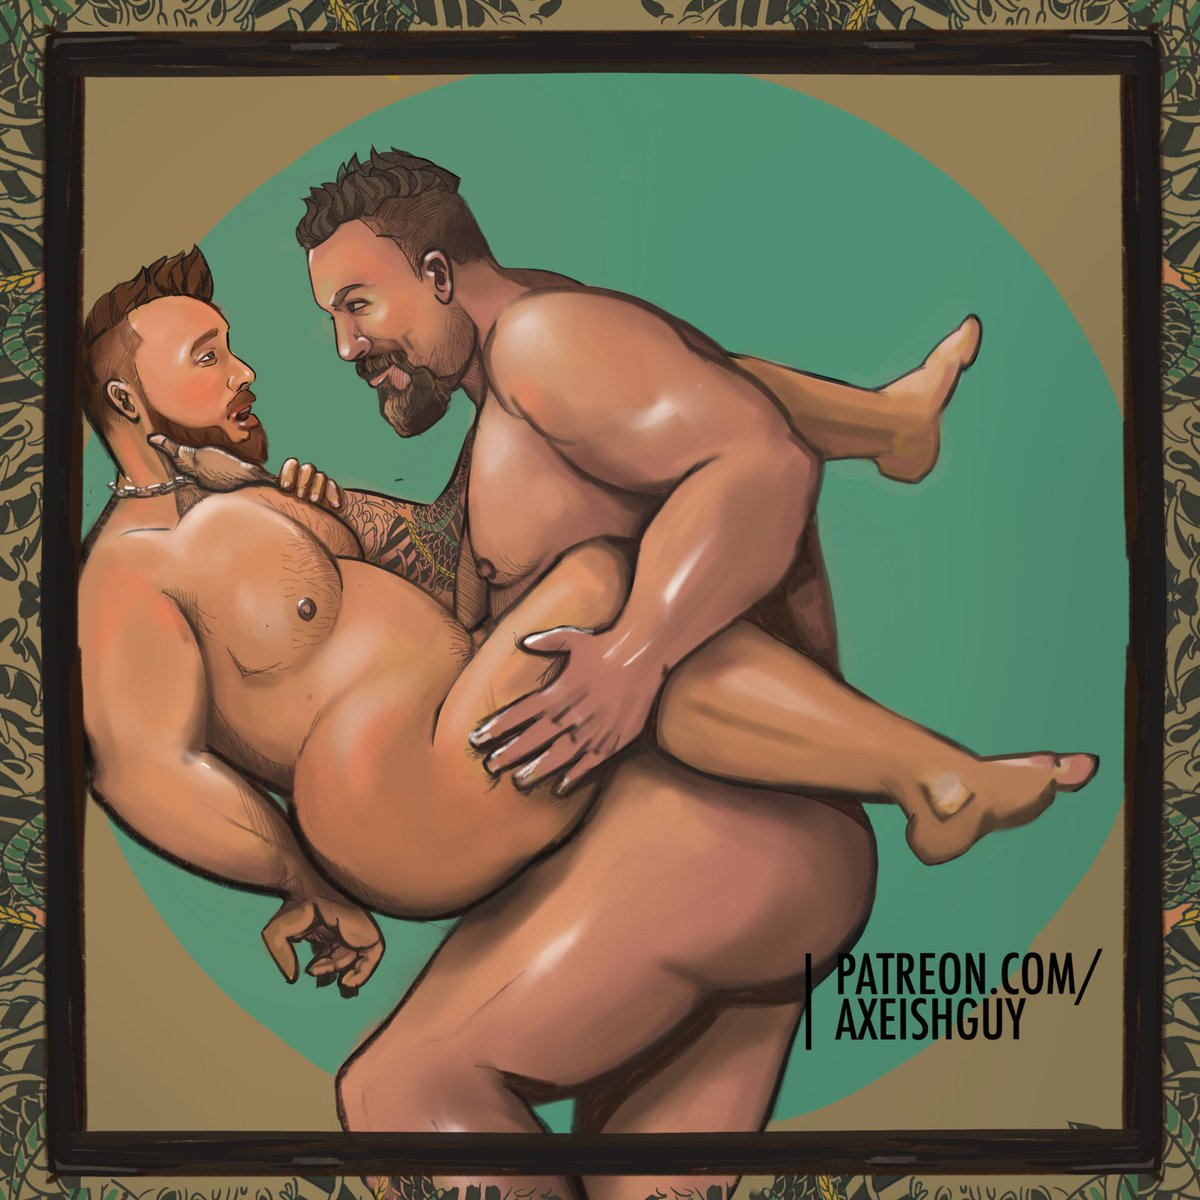 Oh daddy. Breath taken away :) Comissioned art More content at patreon.com/Axeishguy #gay #gayart #dom #daddy #homoerotic #gaybears #nakedmen #bara #gaylove #kinky #horny #fetish